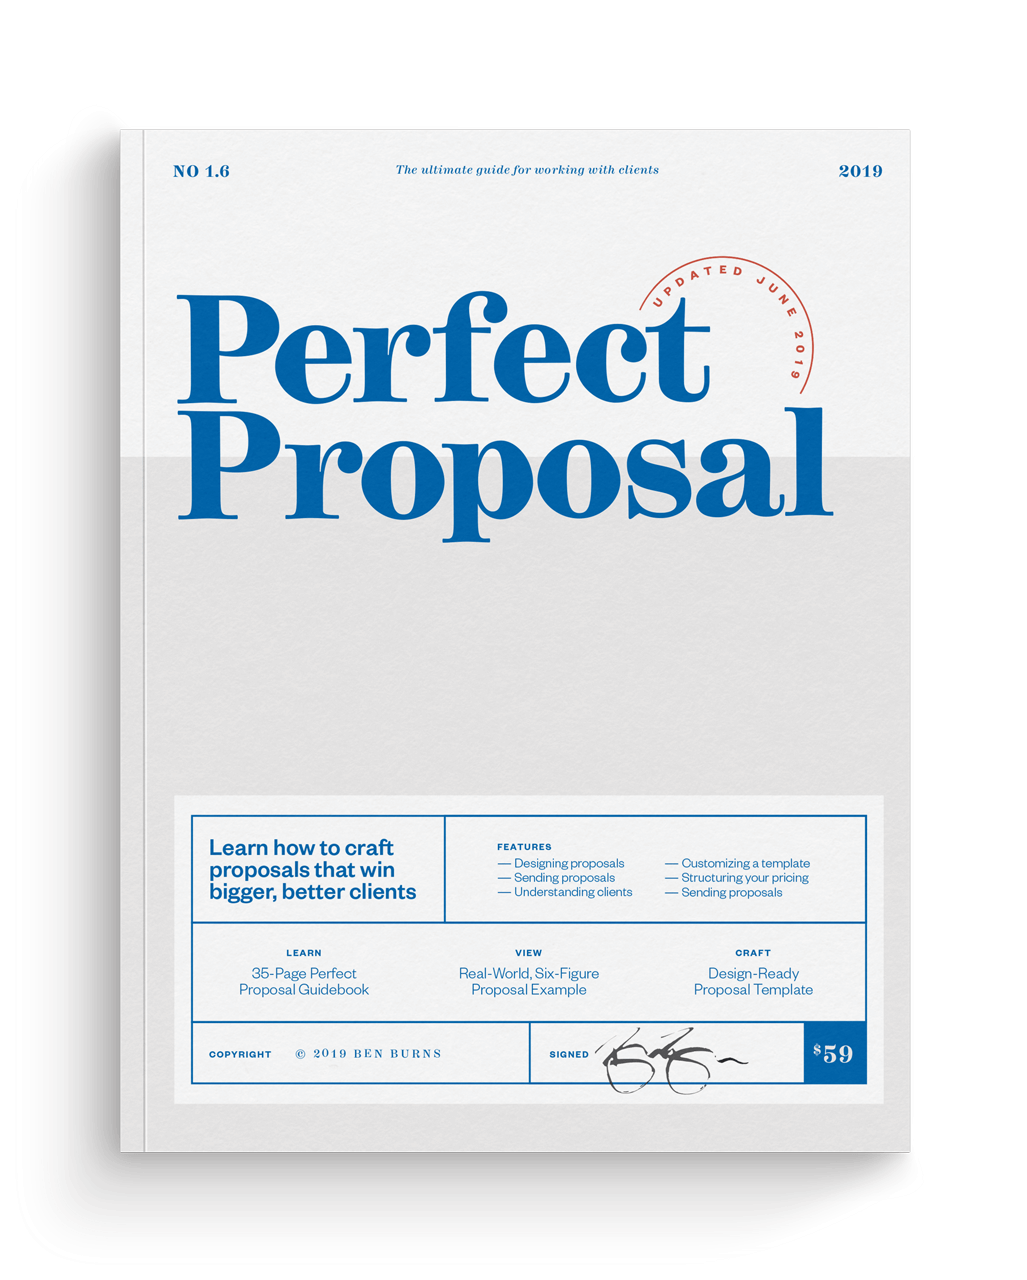 The Perfect Proposal From The Futur